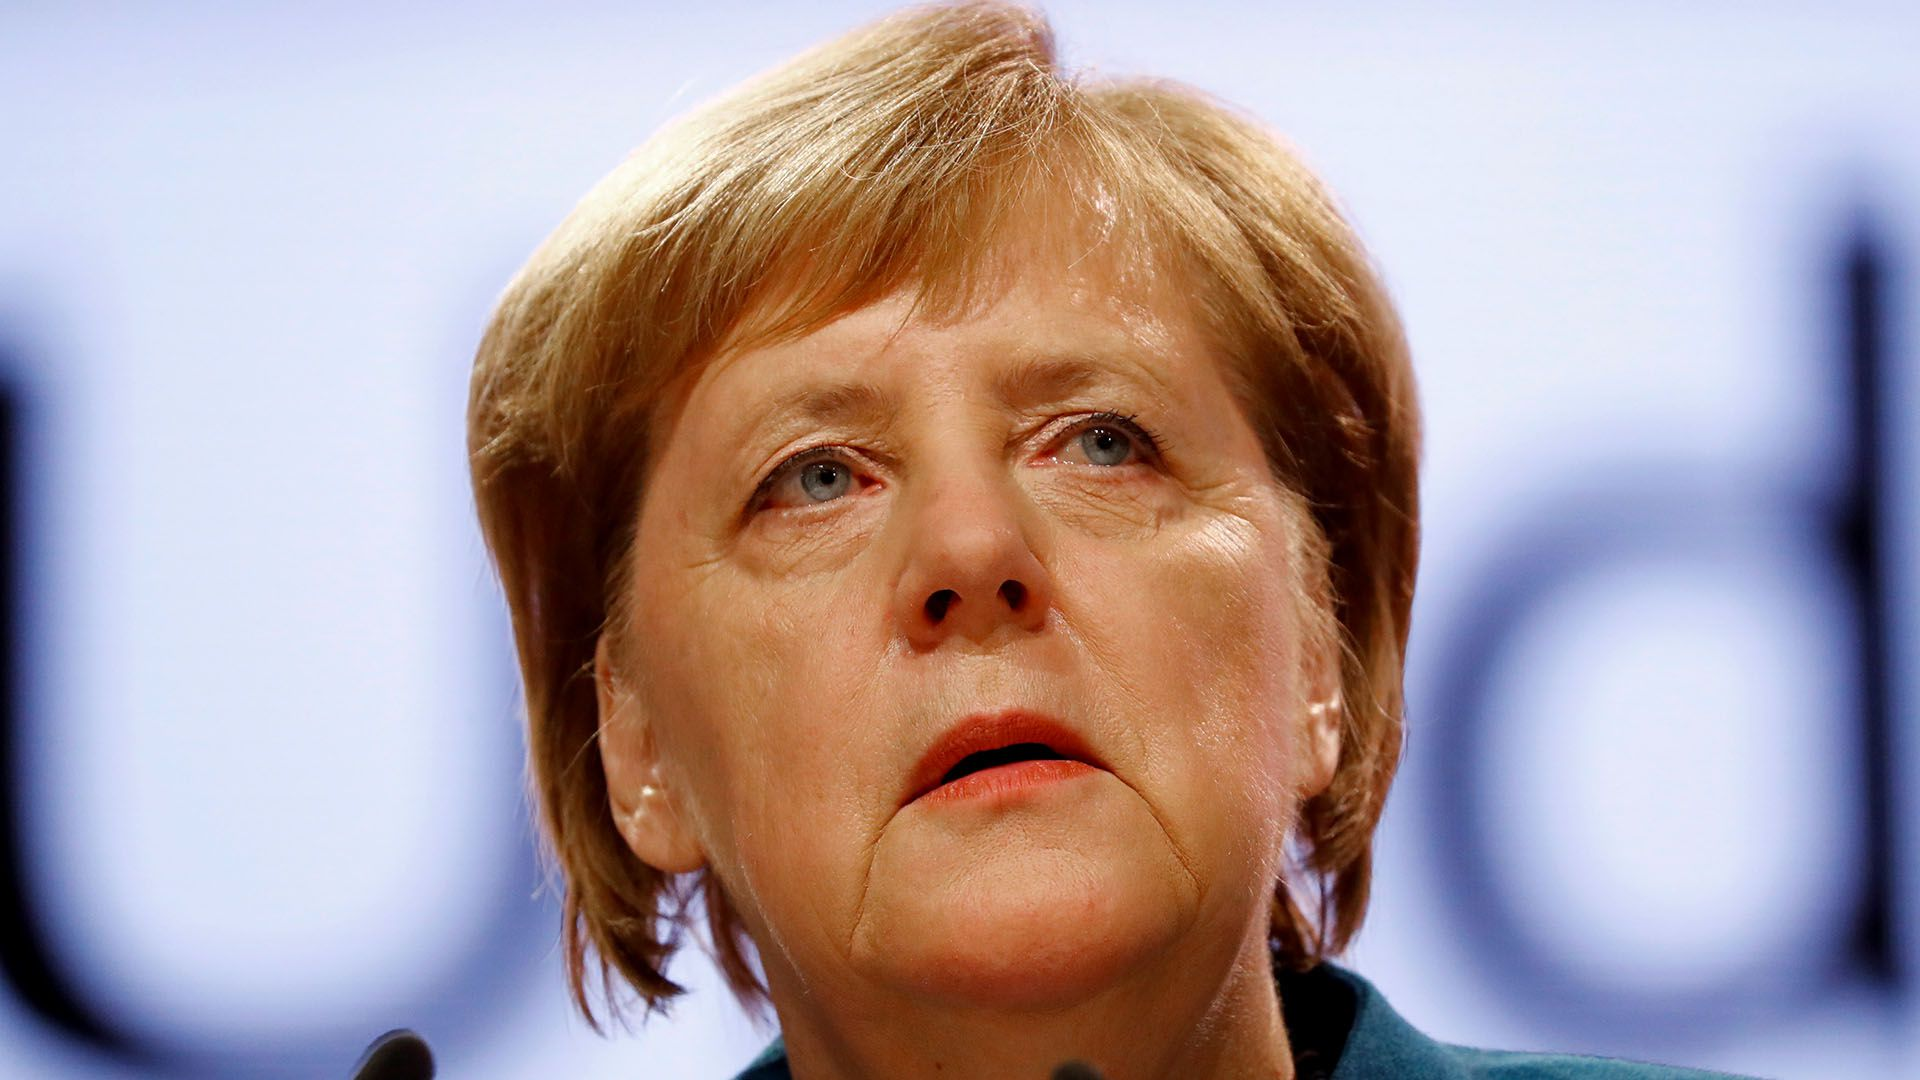 Angela Merkel, canciller de Alemania. (Reuters)